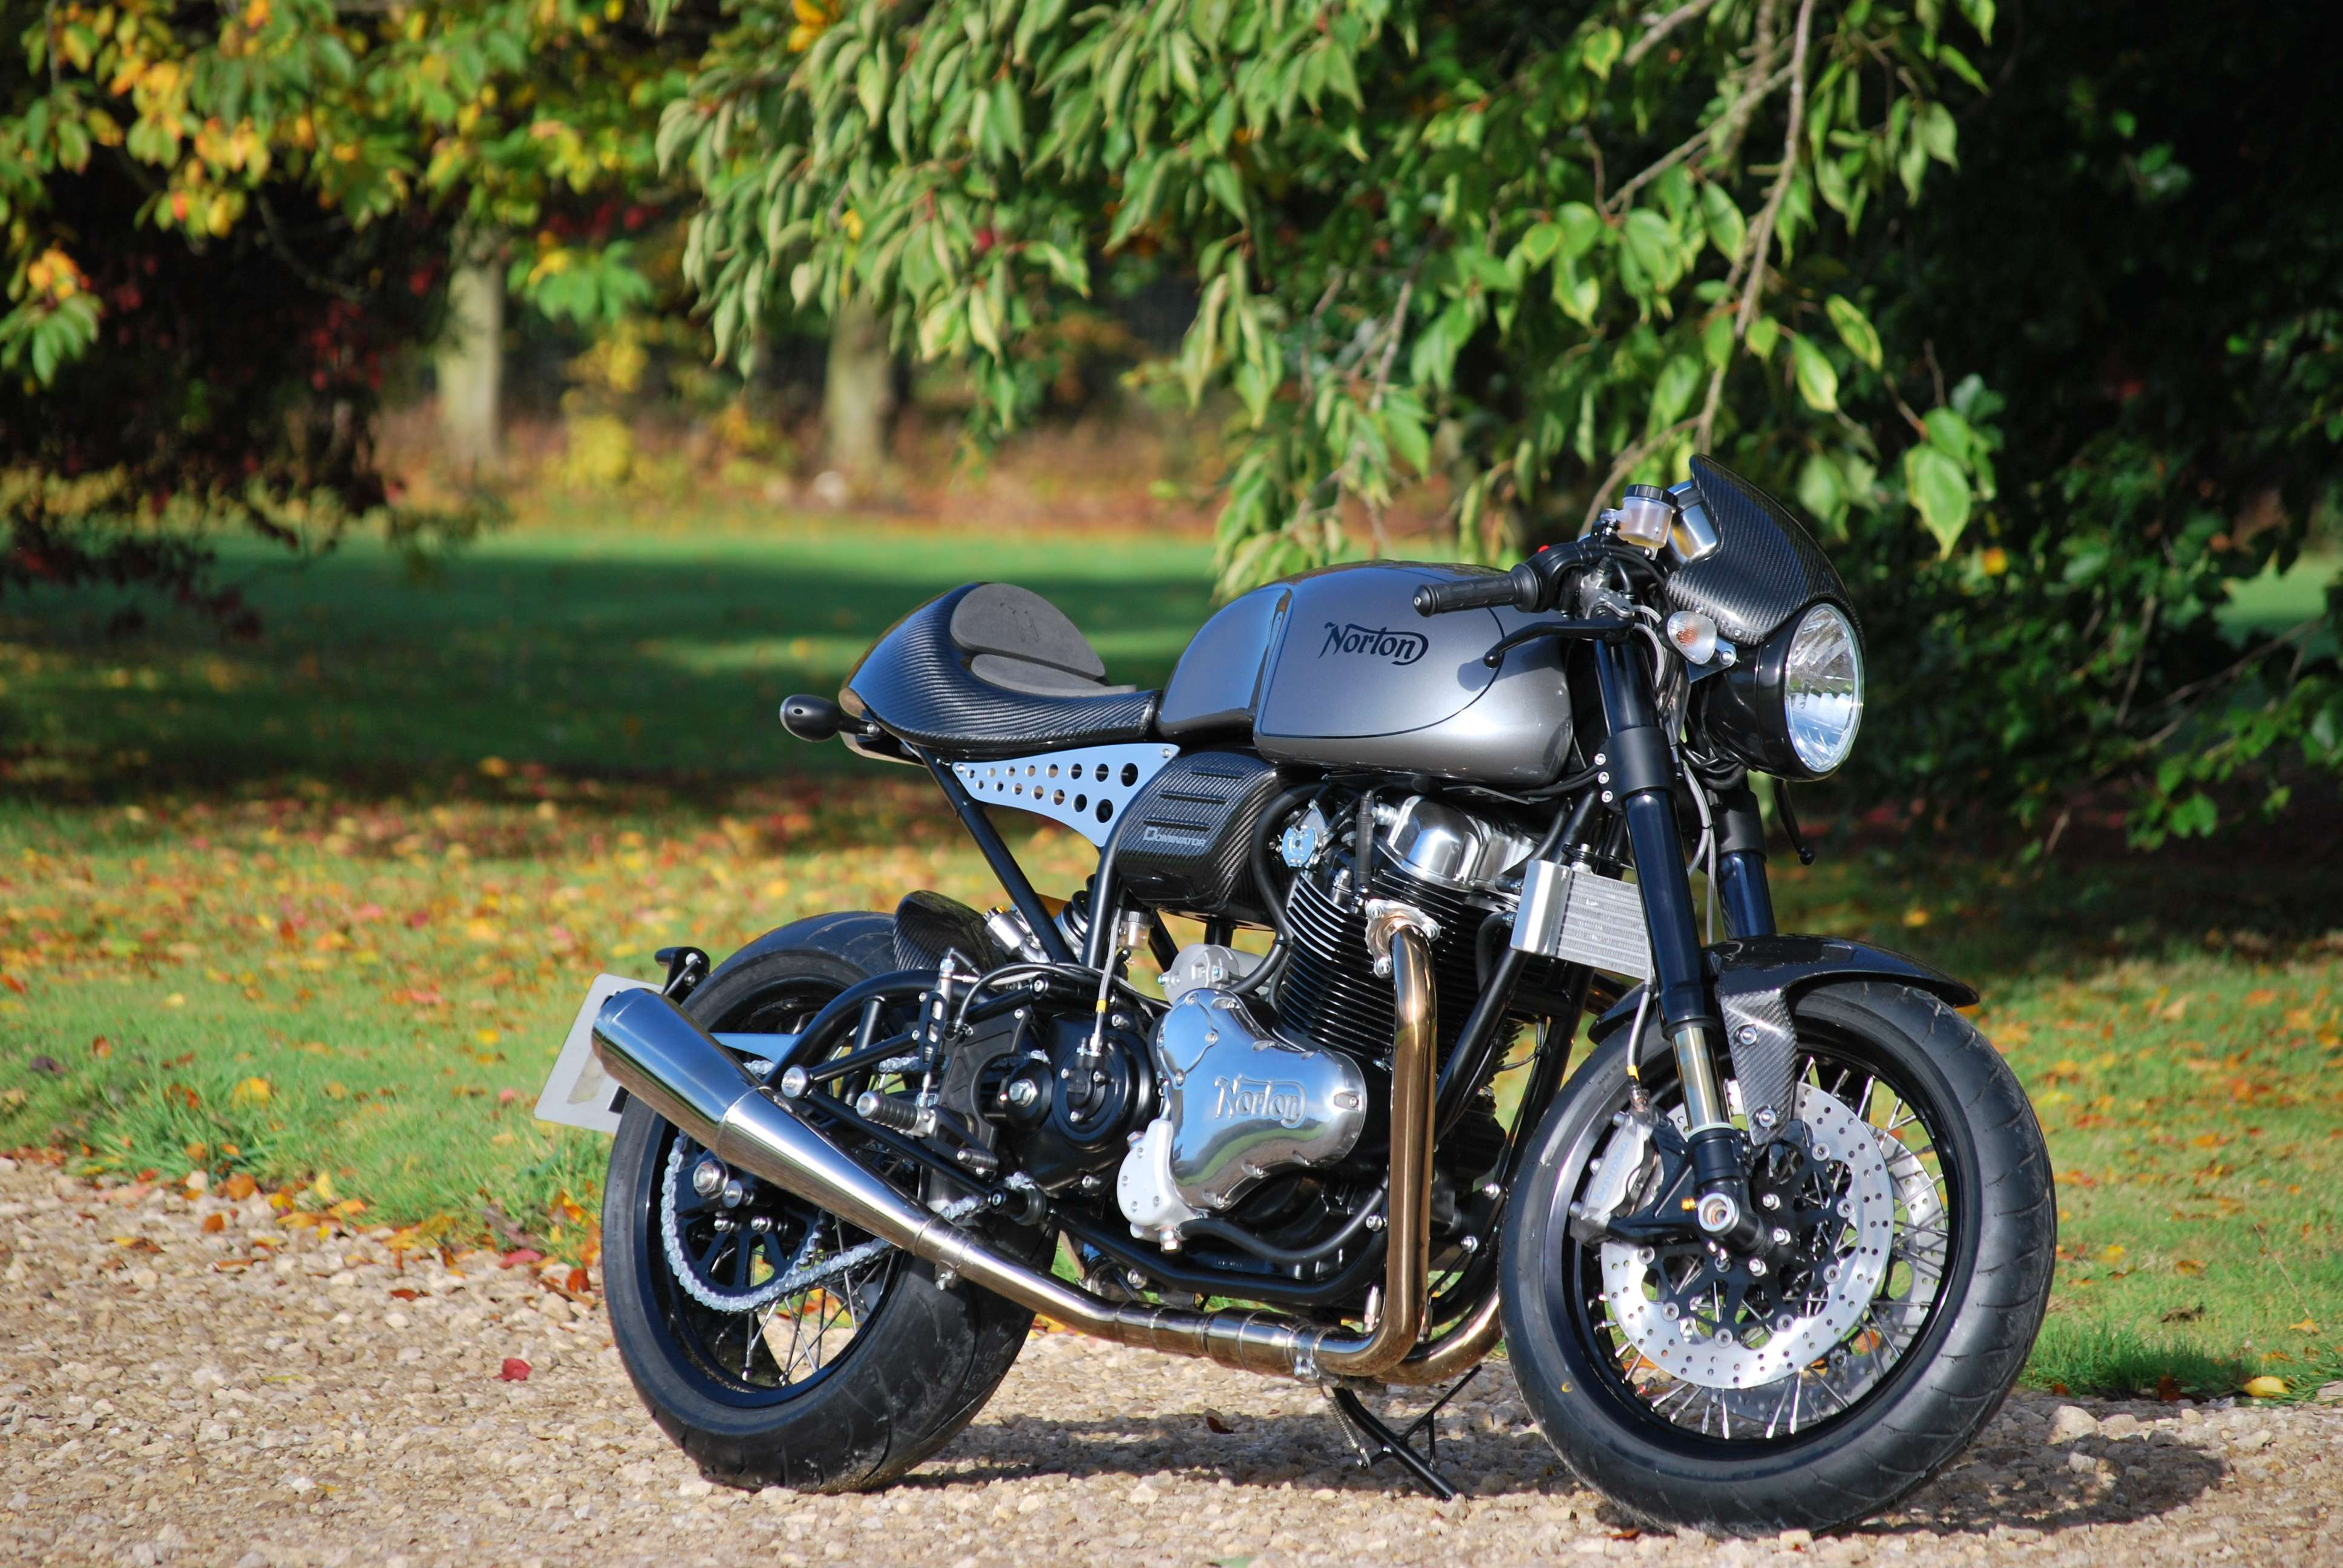 Norton Commando 961 SF images #117686